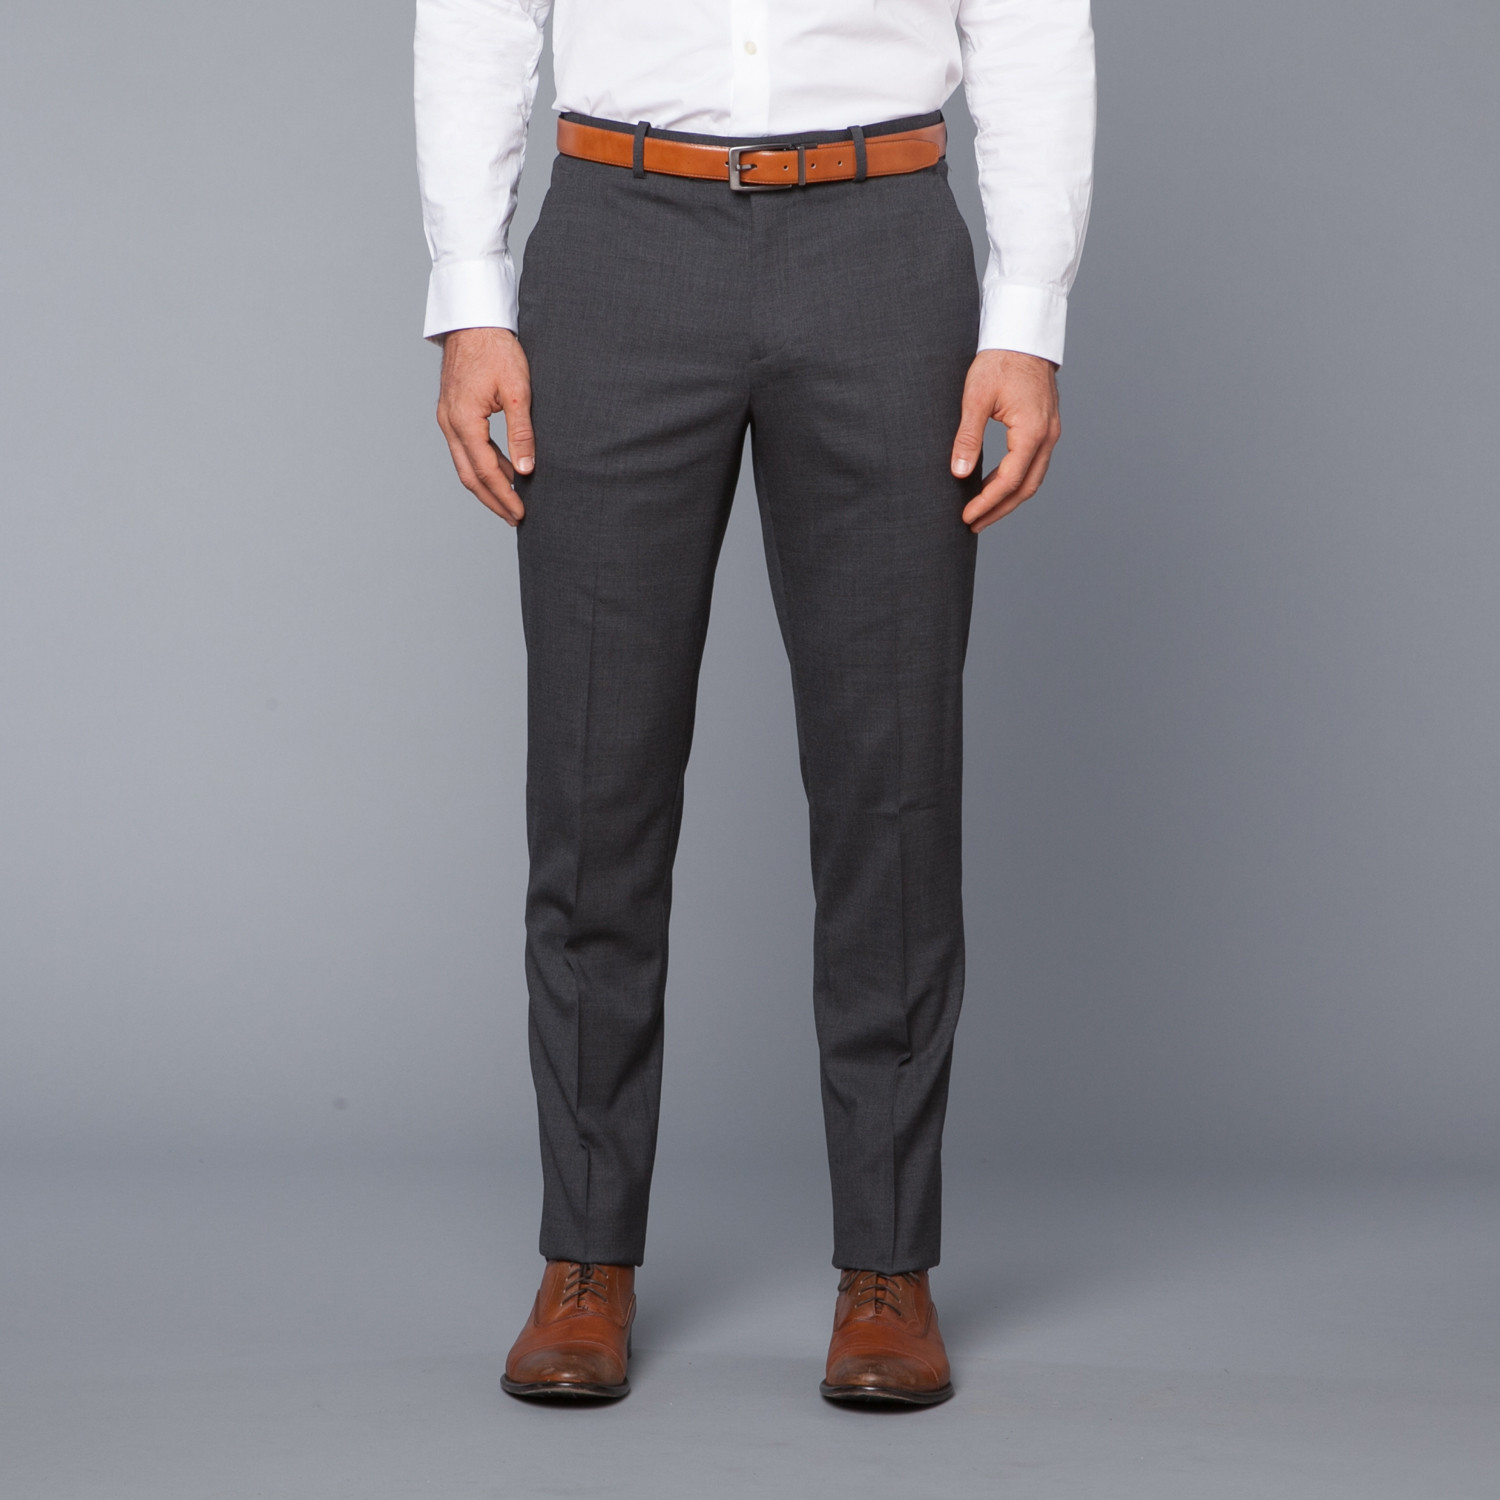 Shop Men's Pants: Dress Pants, Chinos, Khakis, Lauren Ralph Lauren pants and more at Macy's! Macy's Presents: The Edit - A curated mix of fashion and inspiration Check It Out Free Shipping with $75 purchase + Free Store Pickup.